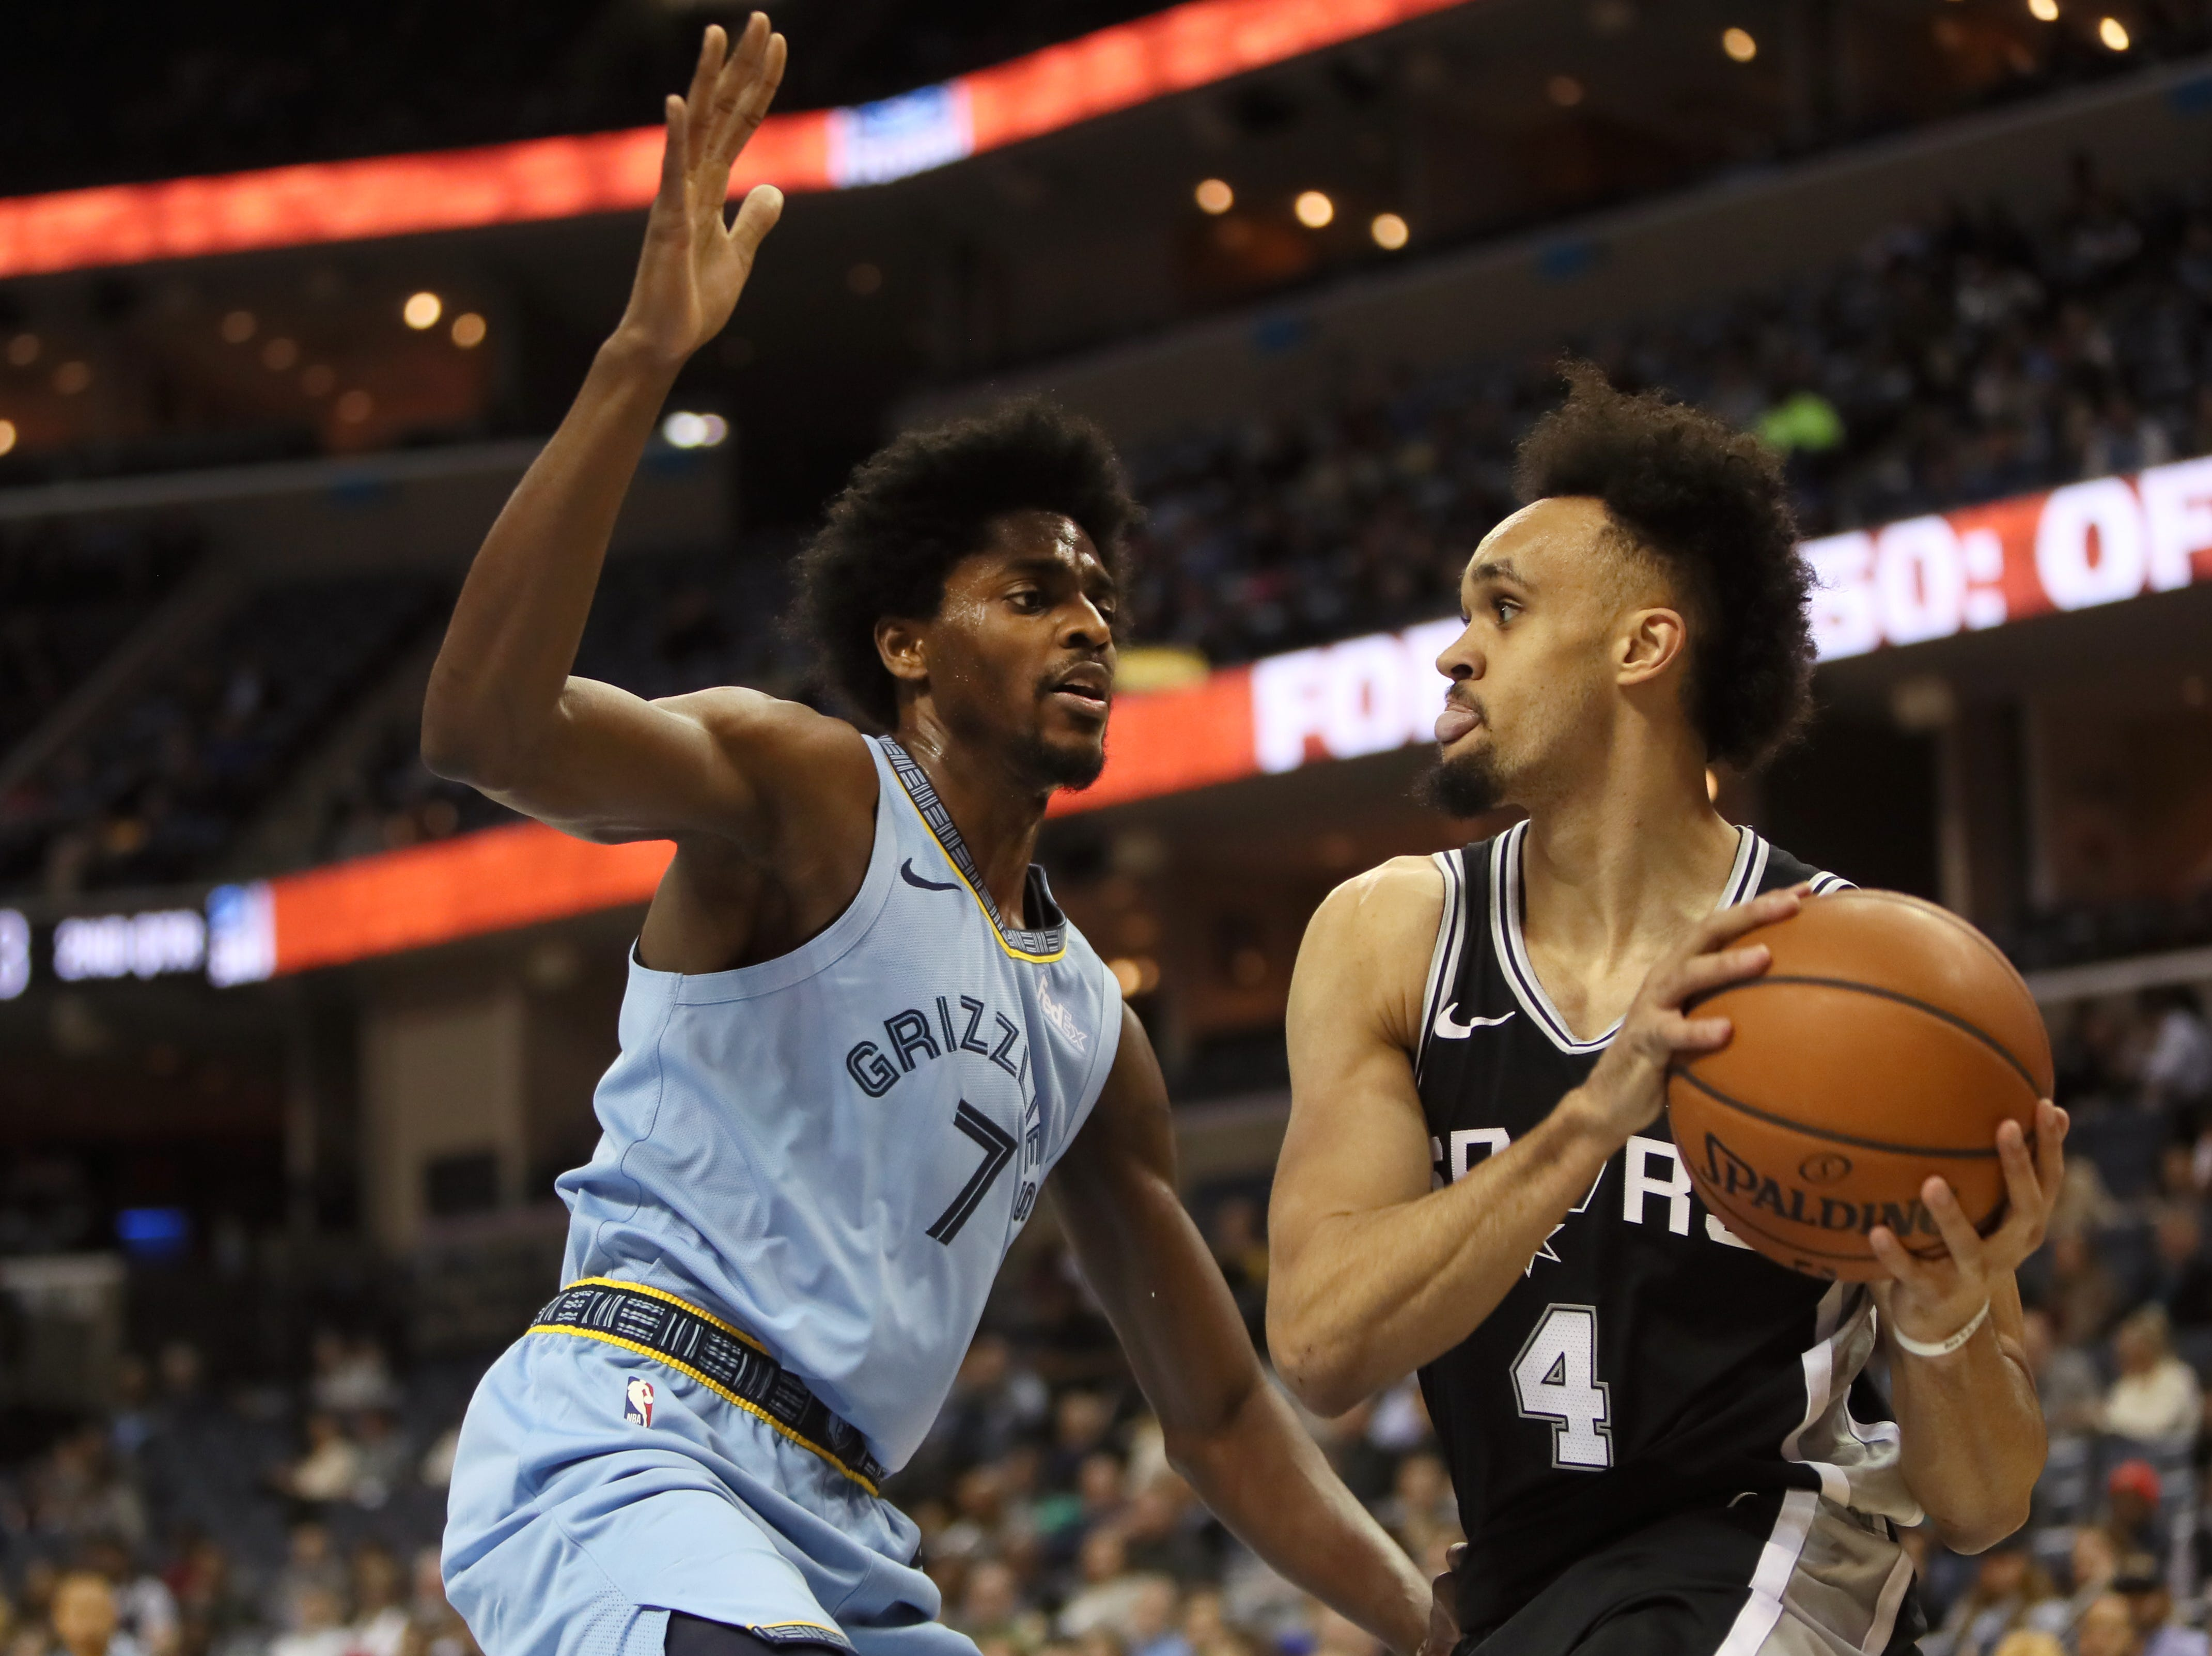 Memphis Grizzlies guard Justin Holiday defends San Antonio Spurs guard Derrick White during their game at the FedExForum on Wednesday, Jan. 9, 2019.